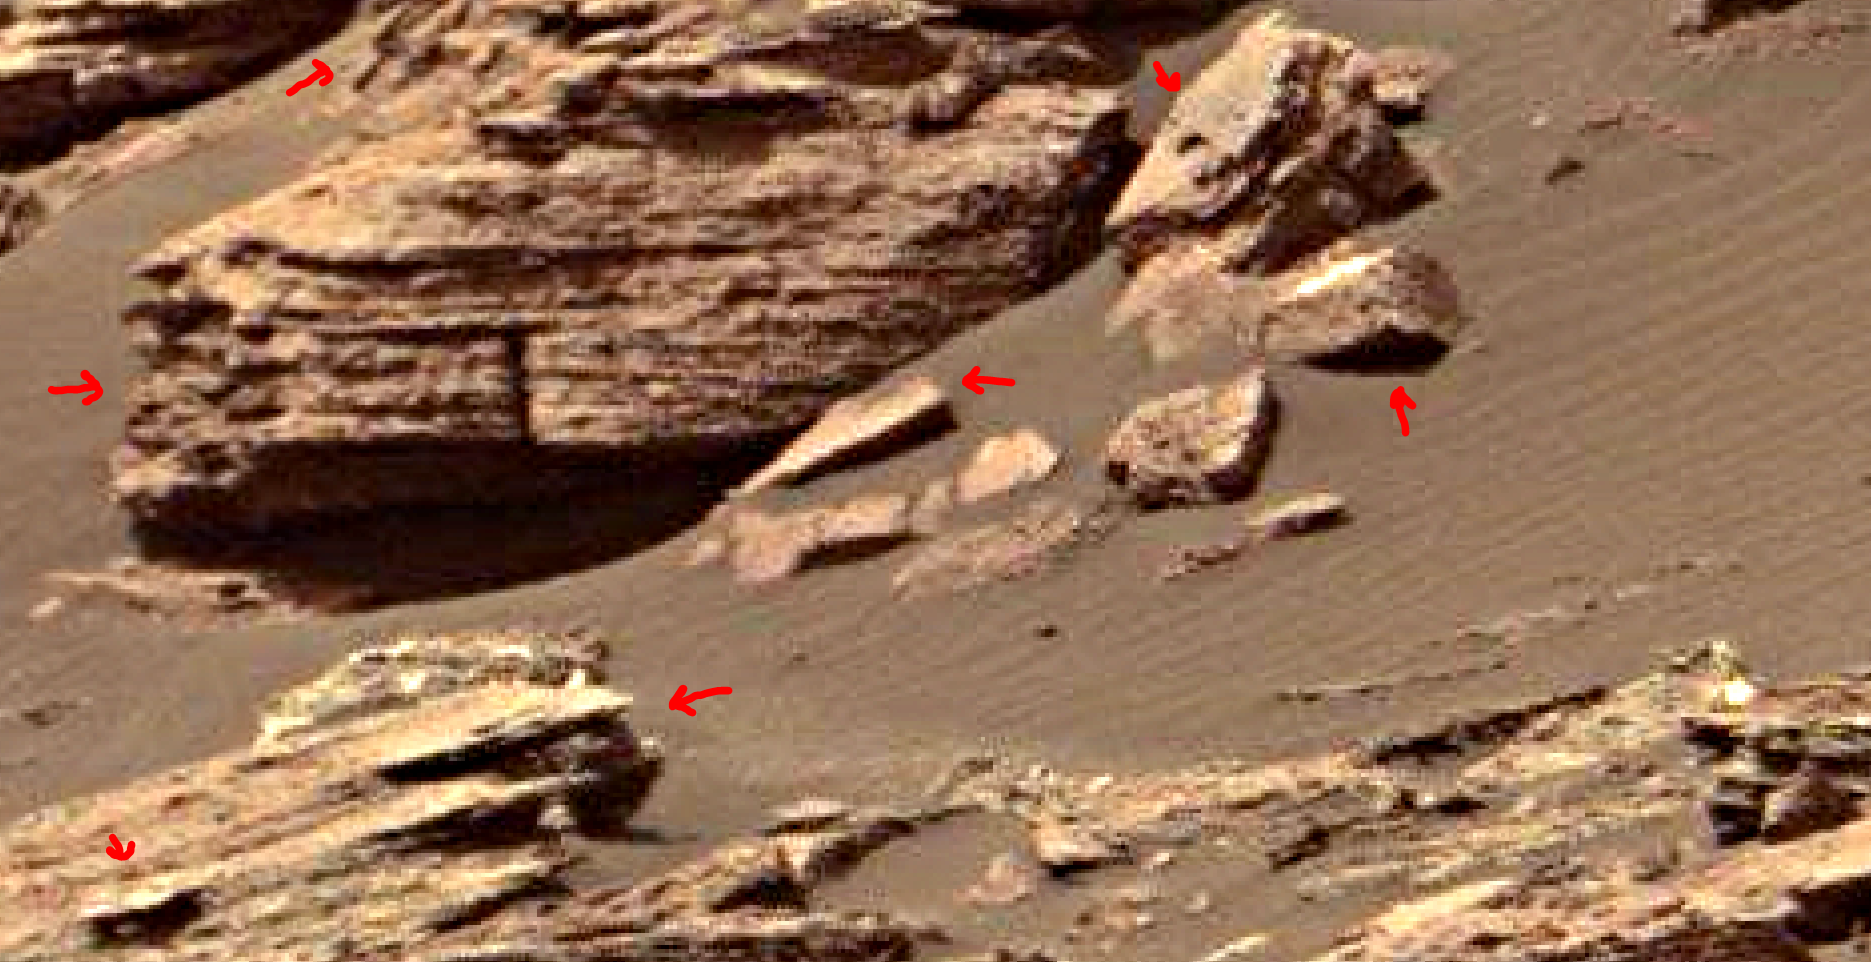 mars-sol-1493-anomaly-artifacts-6-was-life-on-mars